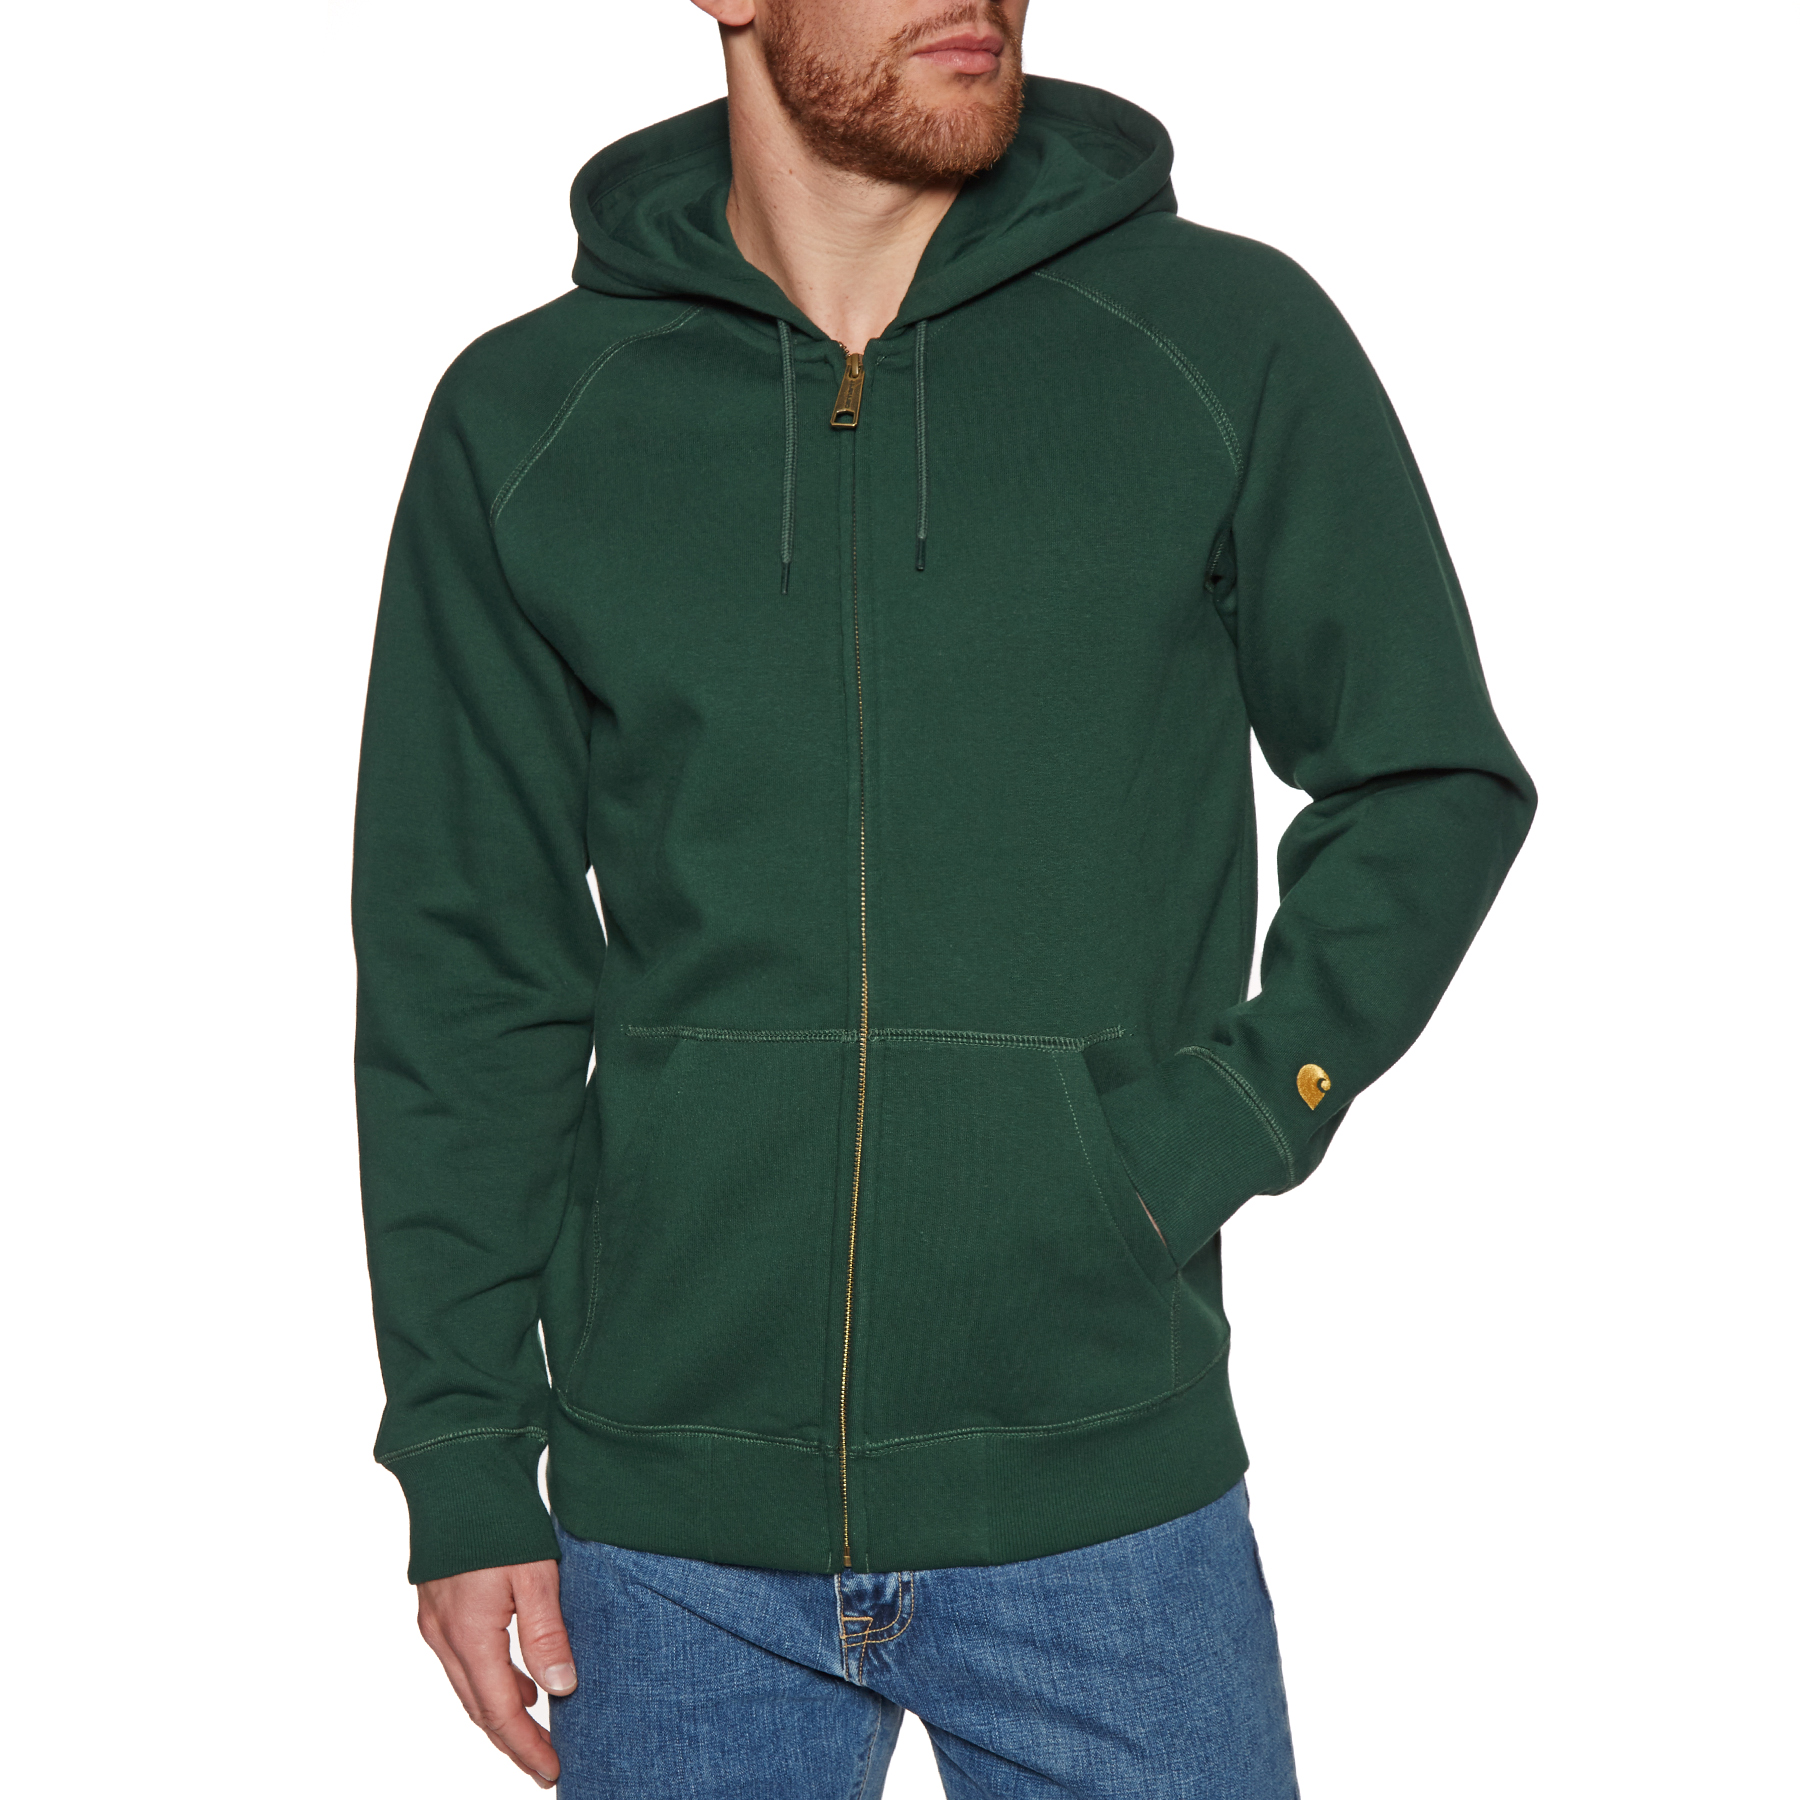 Sweat à Capuche avec Fermeture Éclair Carhartt Hooded Chase Free Delivery options on All Orders from Surfdome Switzerland